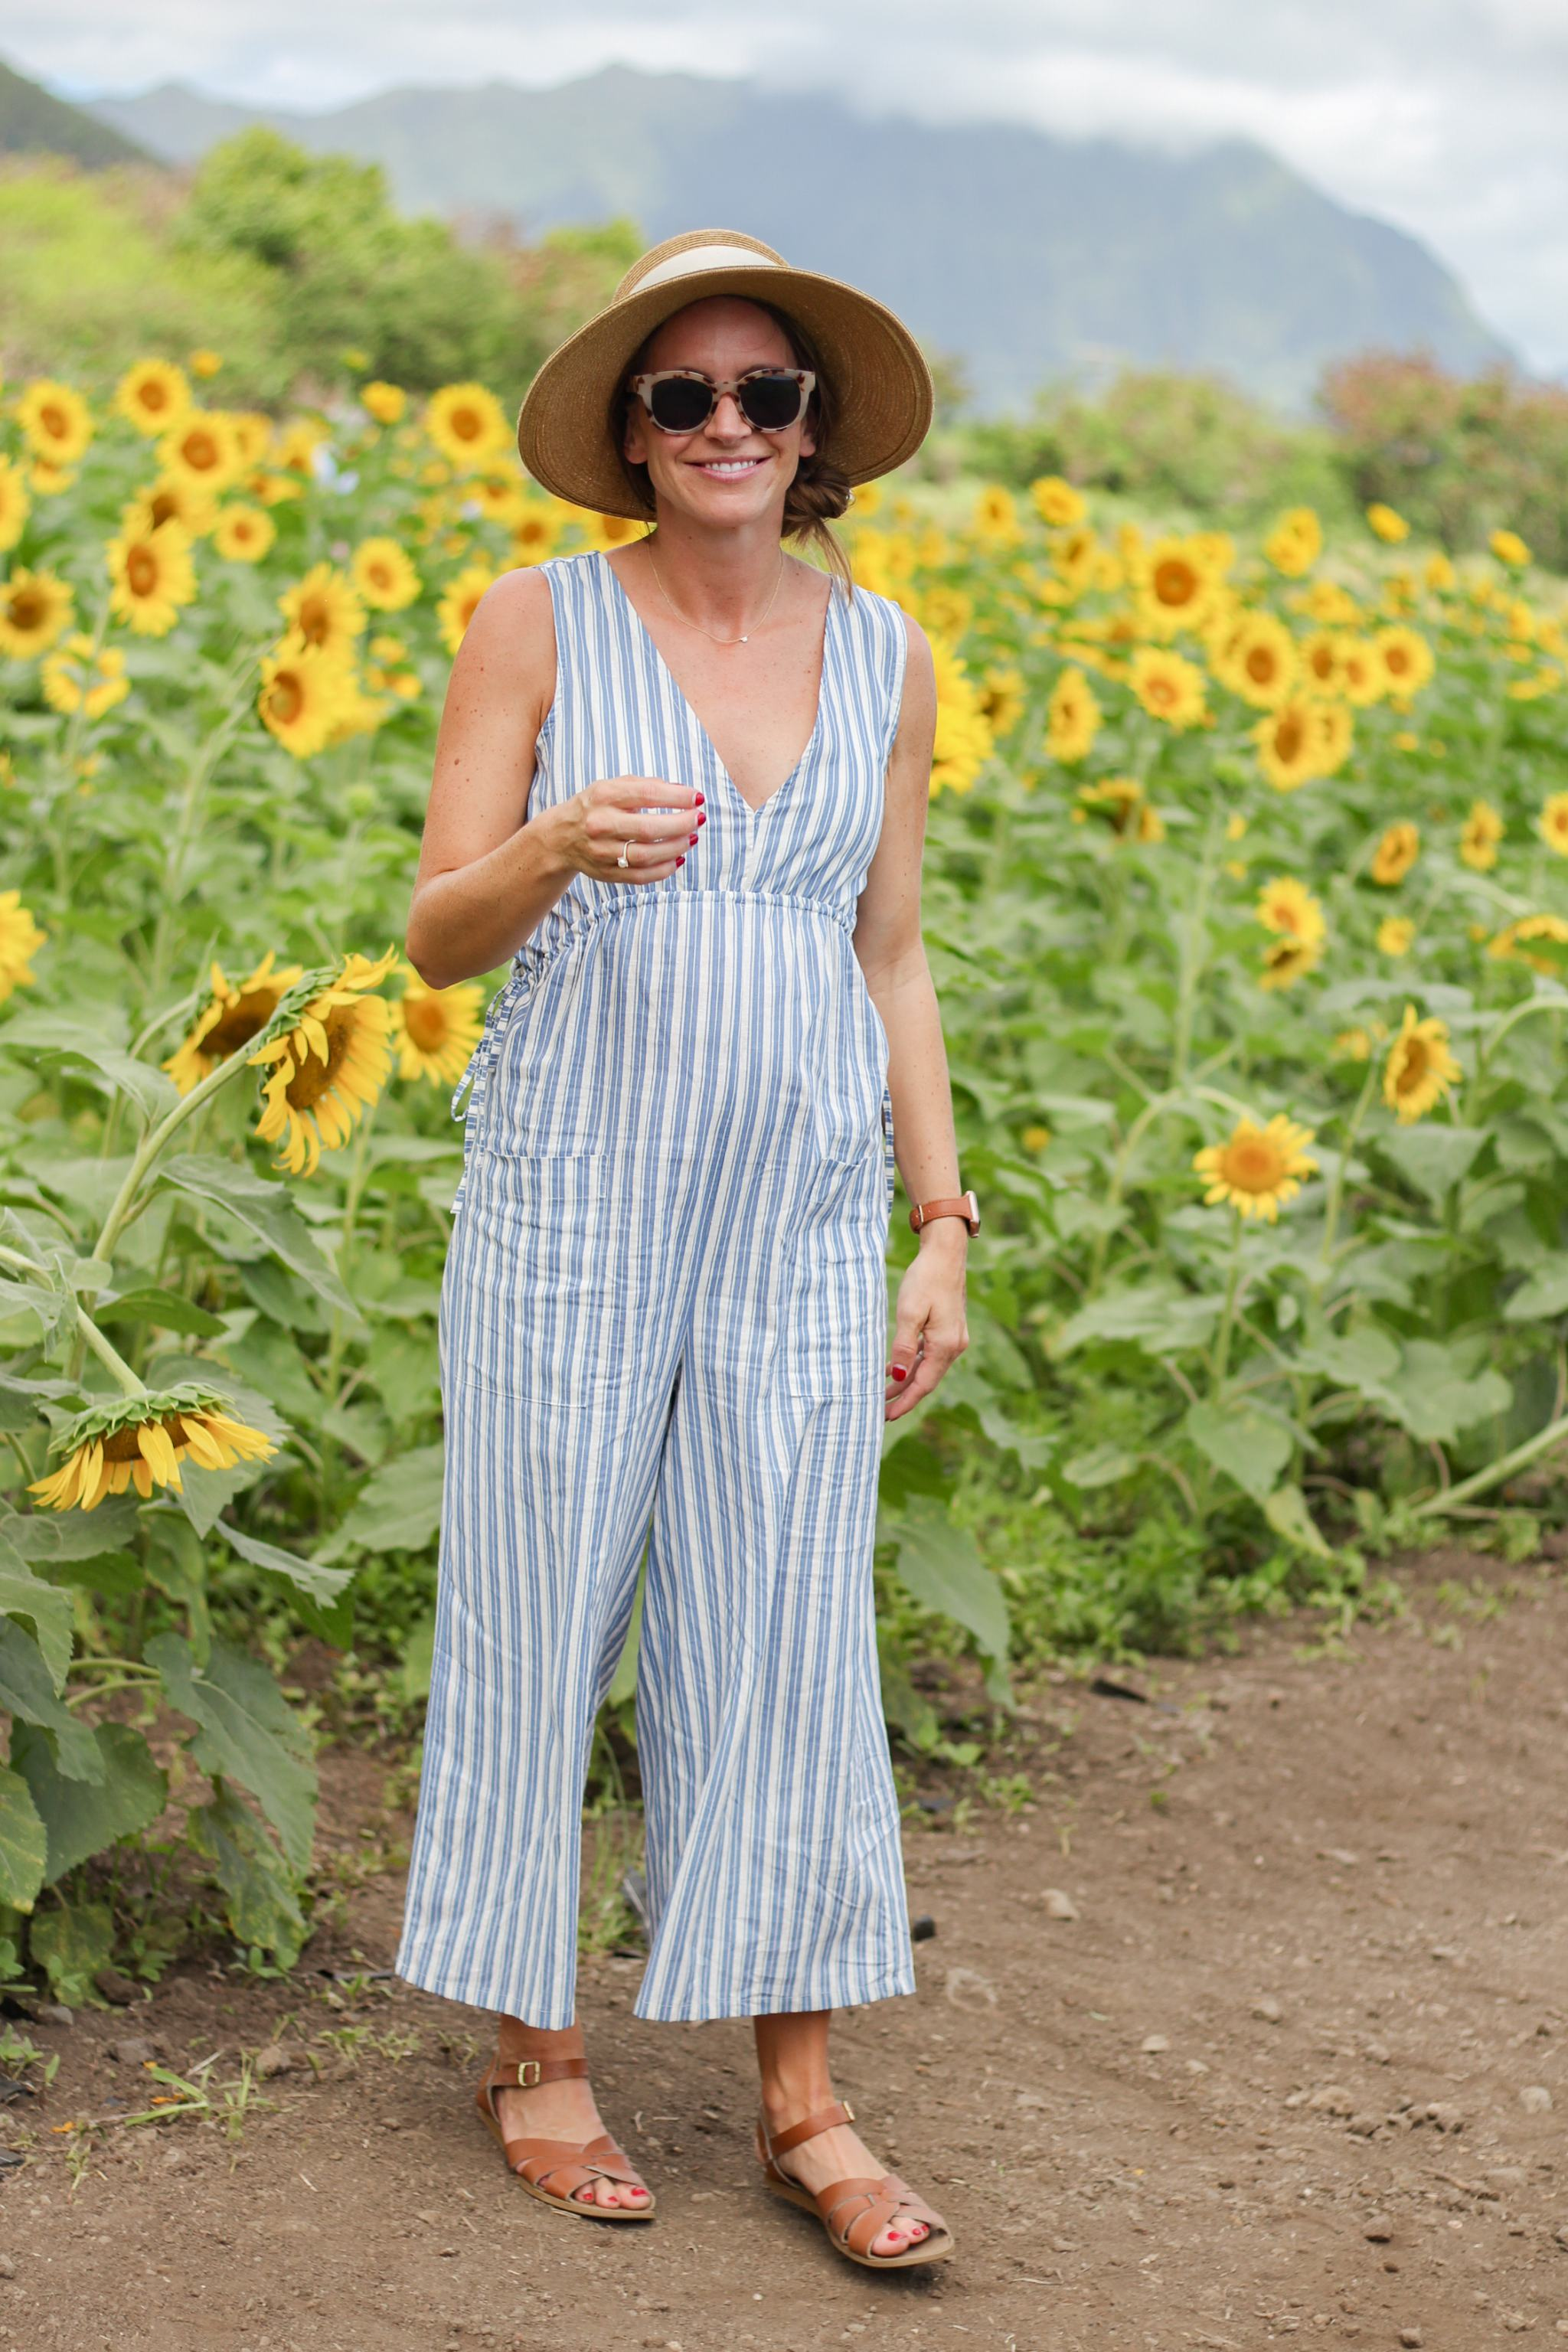 Waimanalo Country Farms sunflowers - zara jumpsuit - maternity style - pregnancy style - 2nd trimester style - sun hat with bow - tuckernuck sun hat - saltwater sandals - Hawaii - things to do in Hawaii - traveling in Hawaii - hawaii with kids - oahu with kids - sunflower field - sunflowers in hawaii